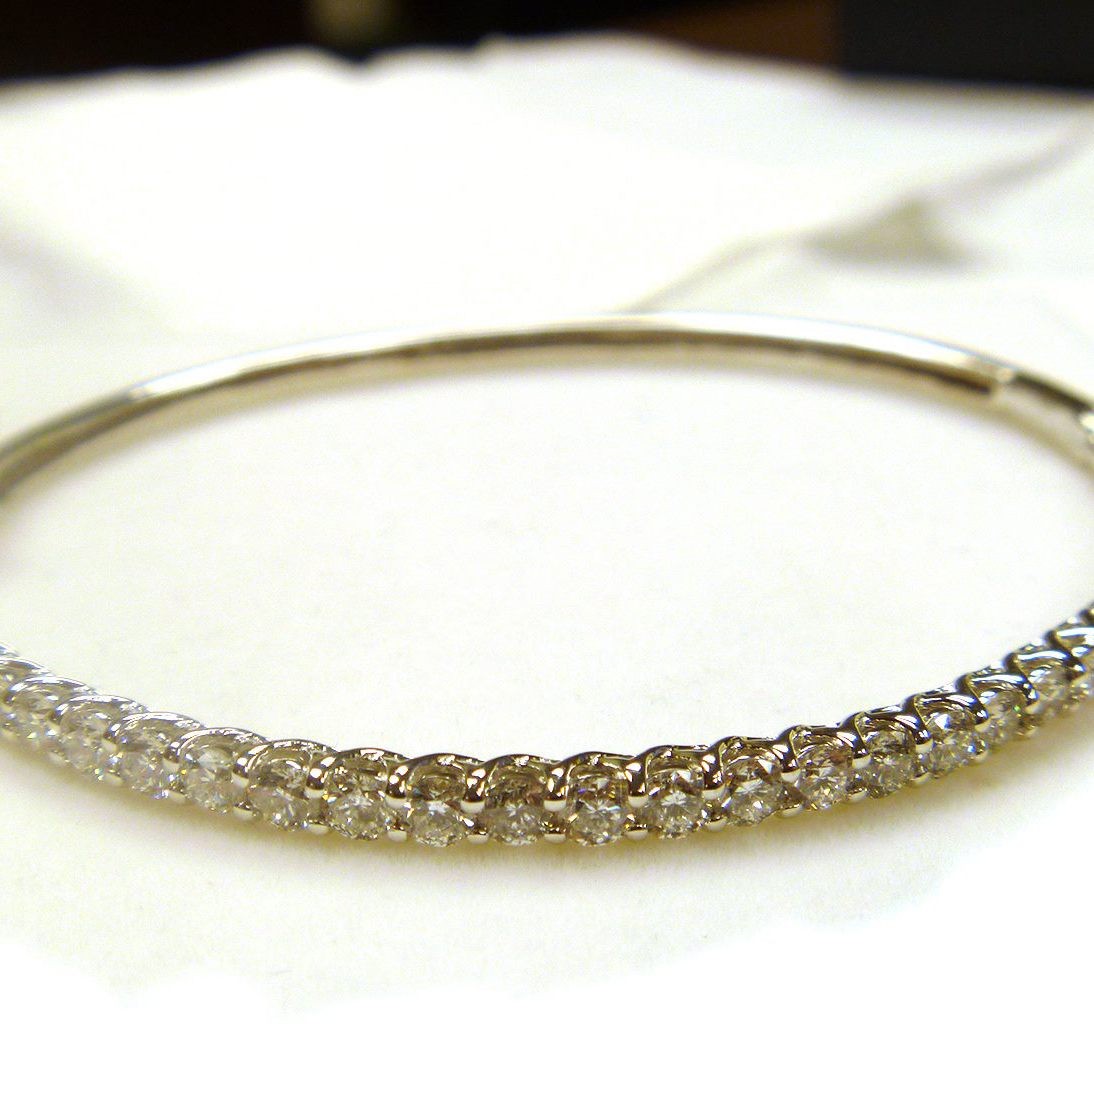 pave bangle diamond jewelers bangles rd shop bracelet gold w white way kravit